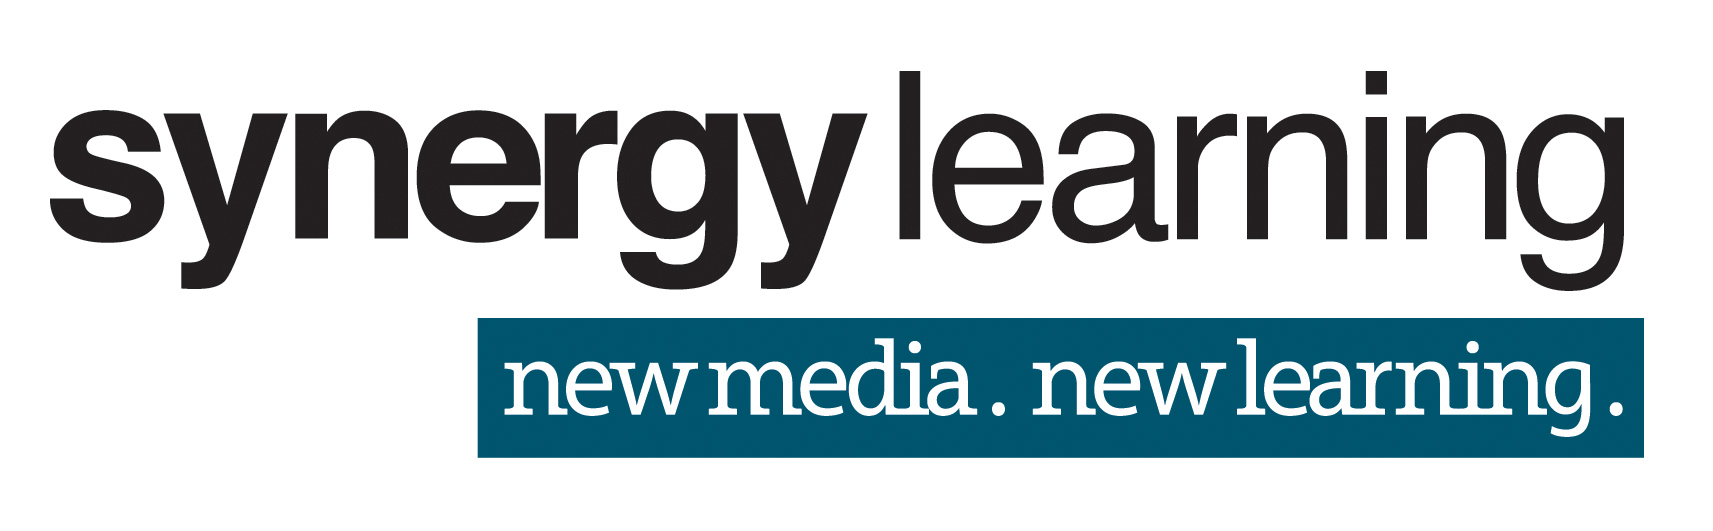 Synergy Learning logo